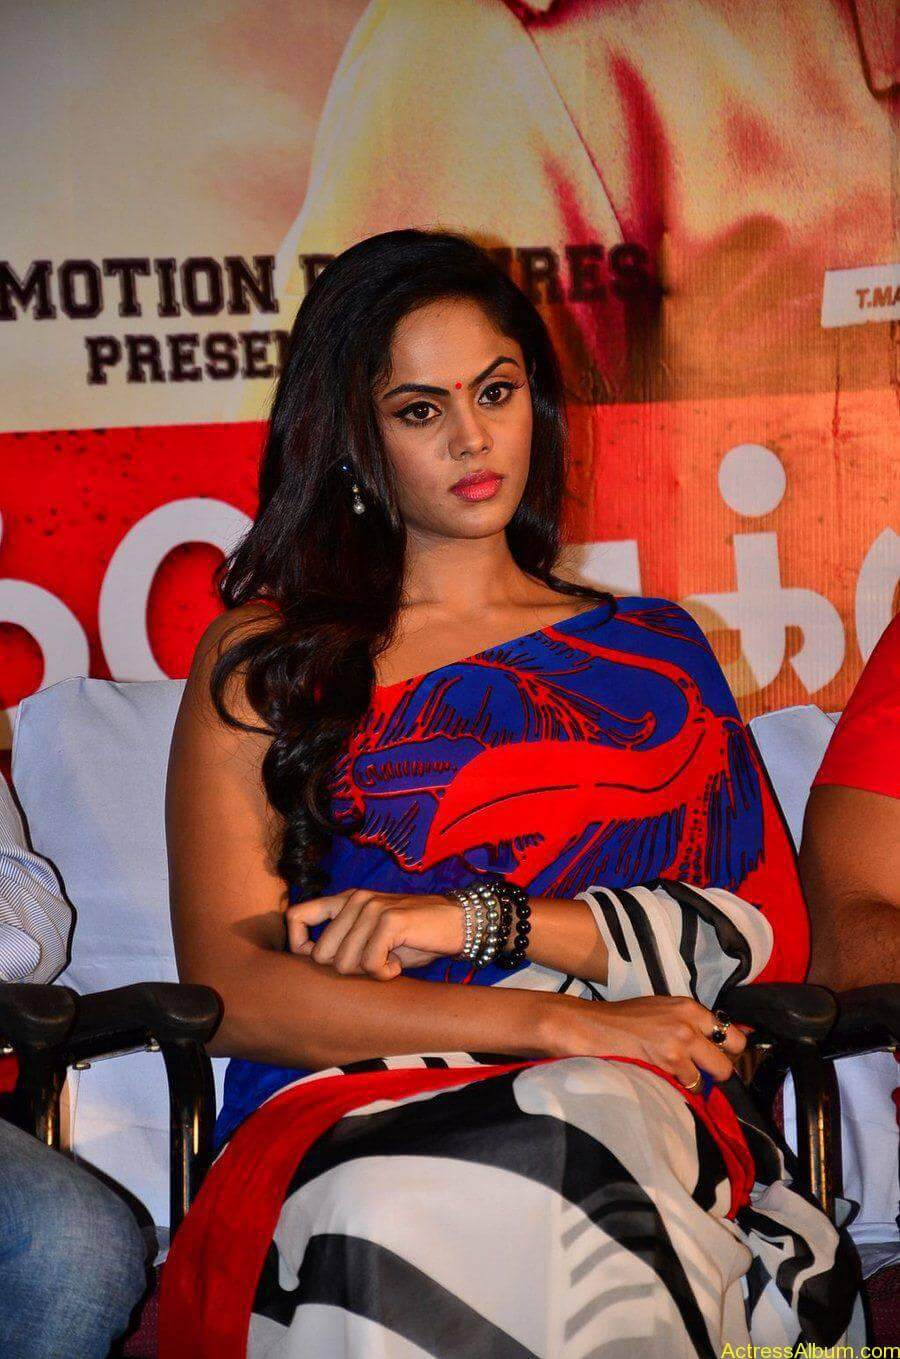 Tamil Actress Karthika Nair Hot in Blue Dress - 2